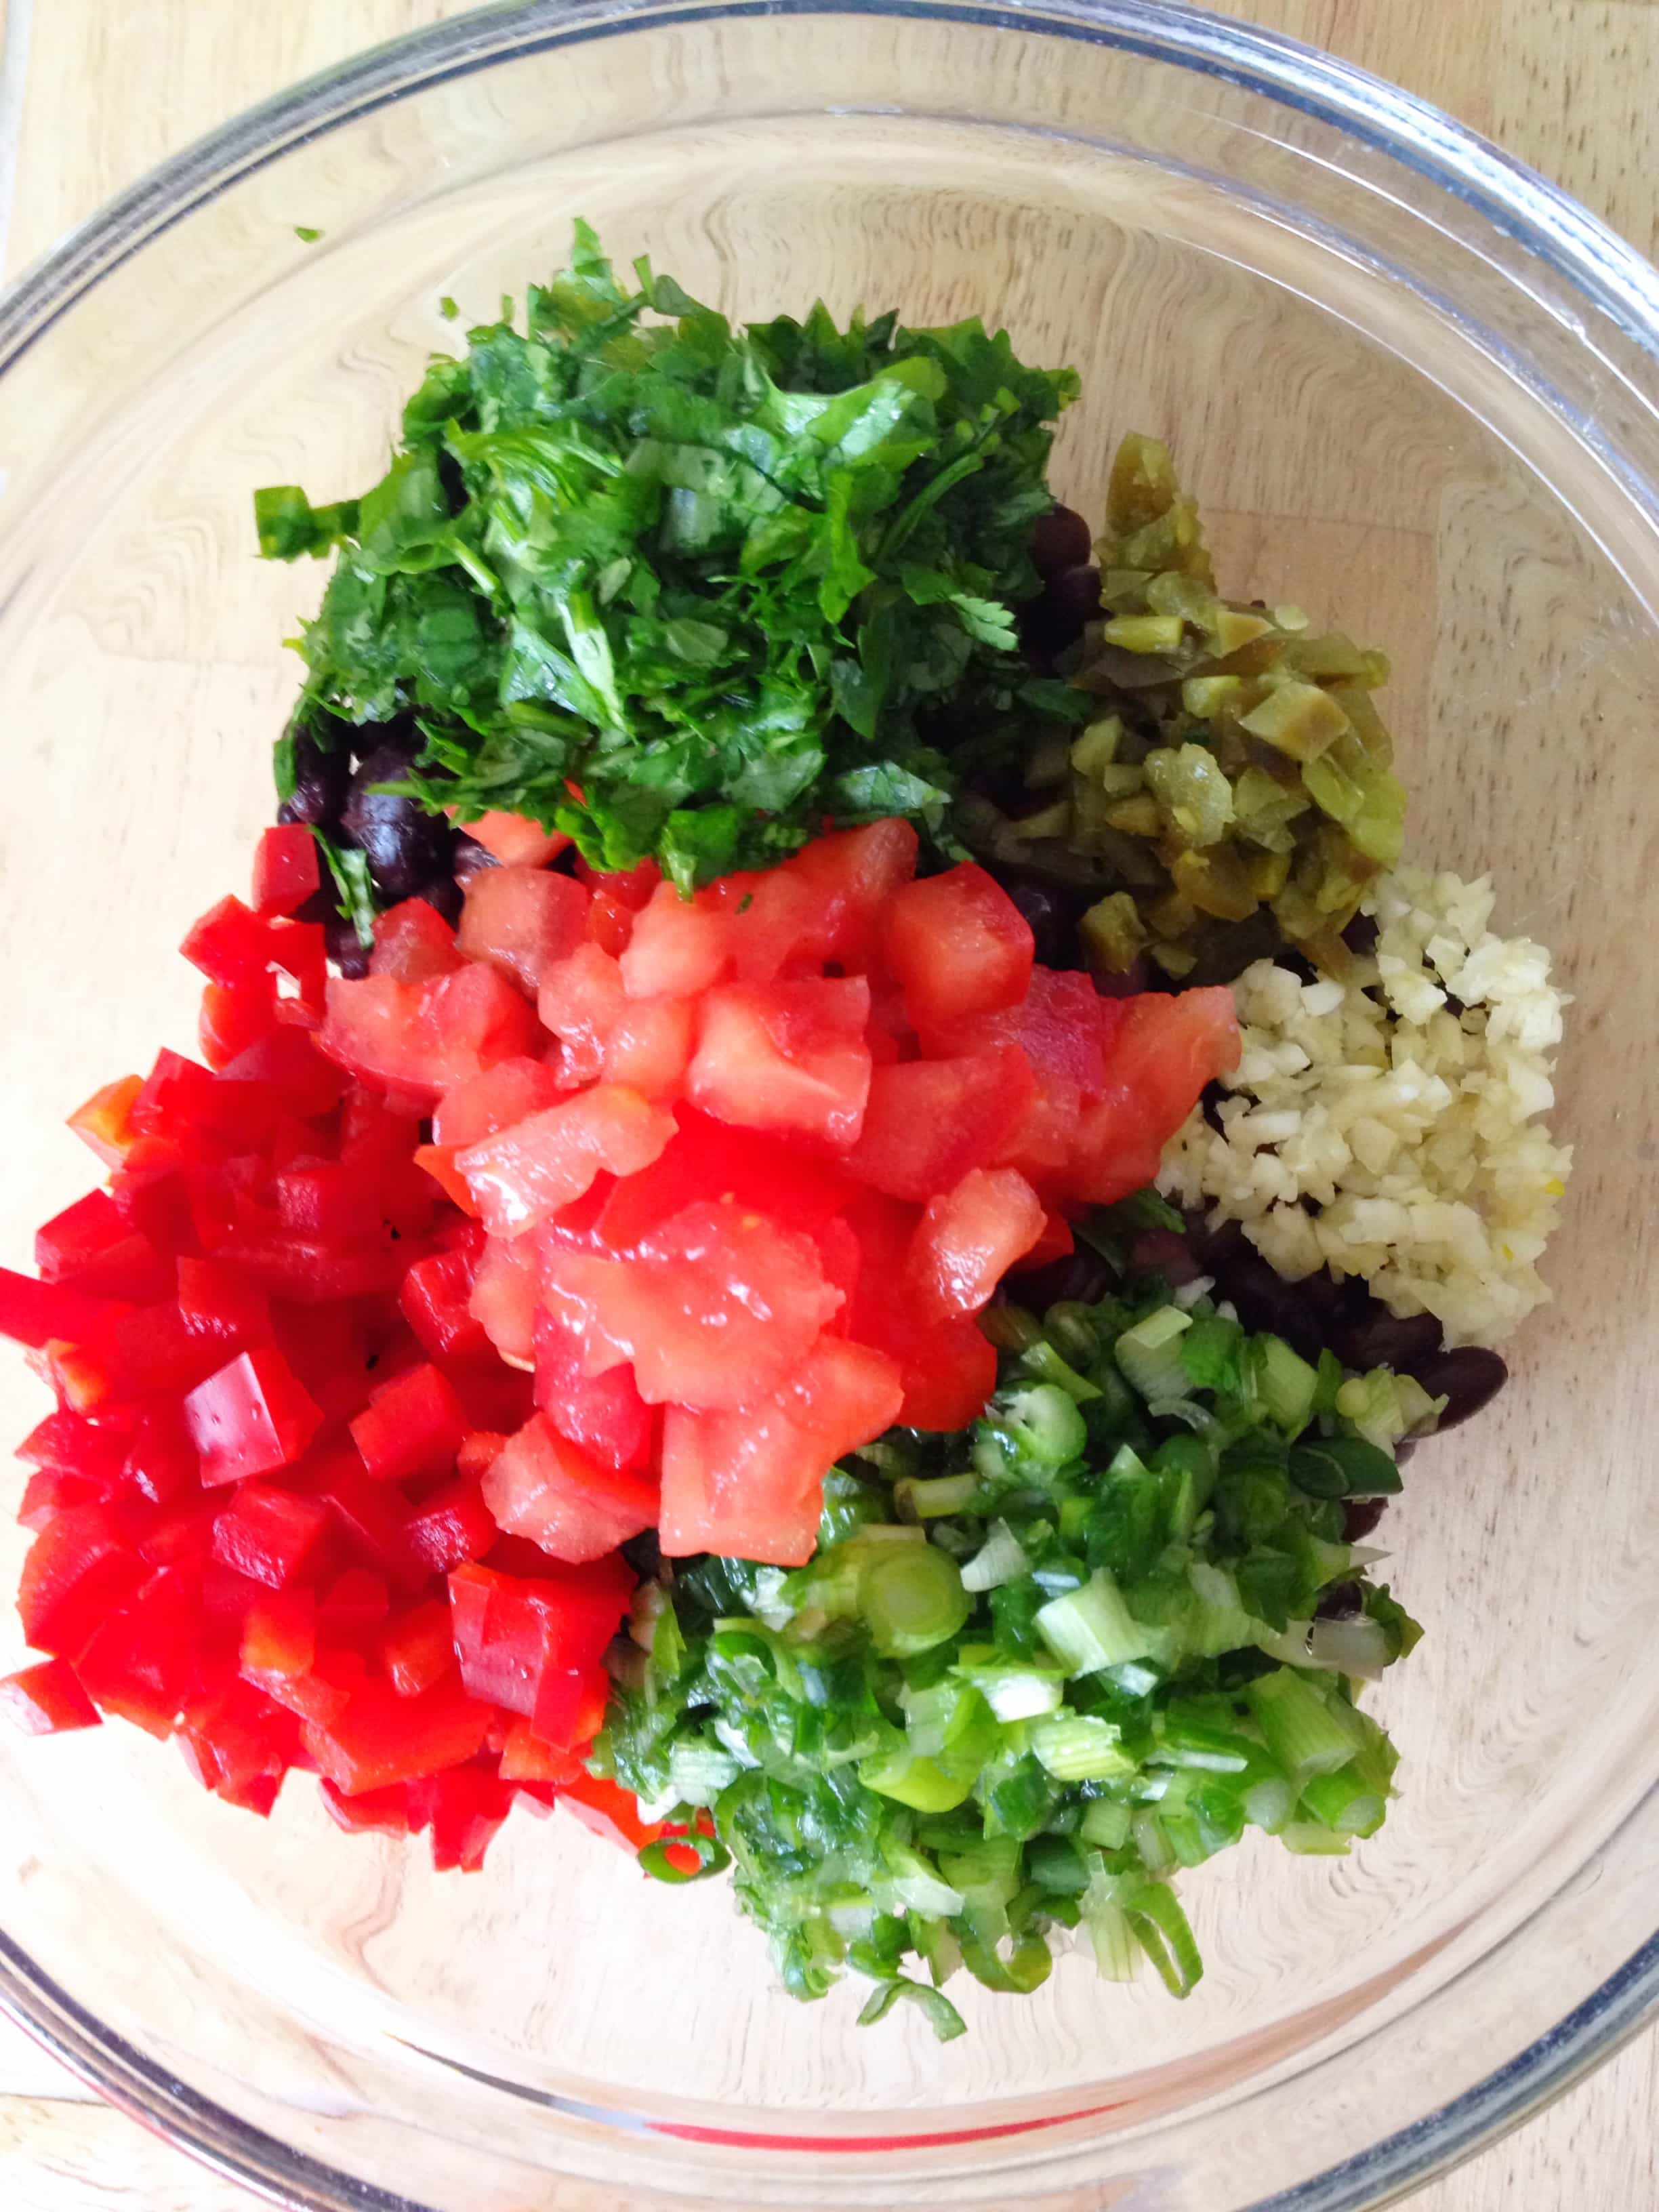 Fresh ingredients all chopped up in a bowl for the black bean salsa